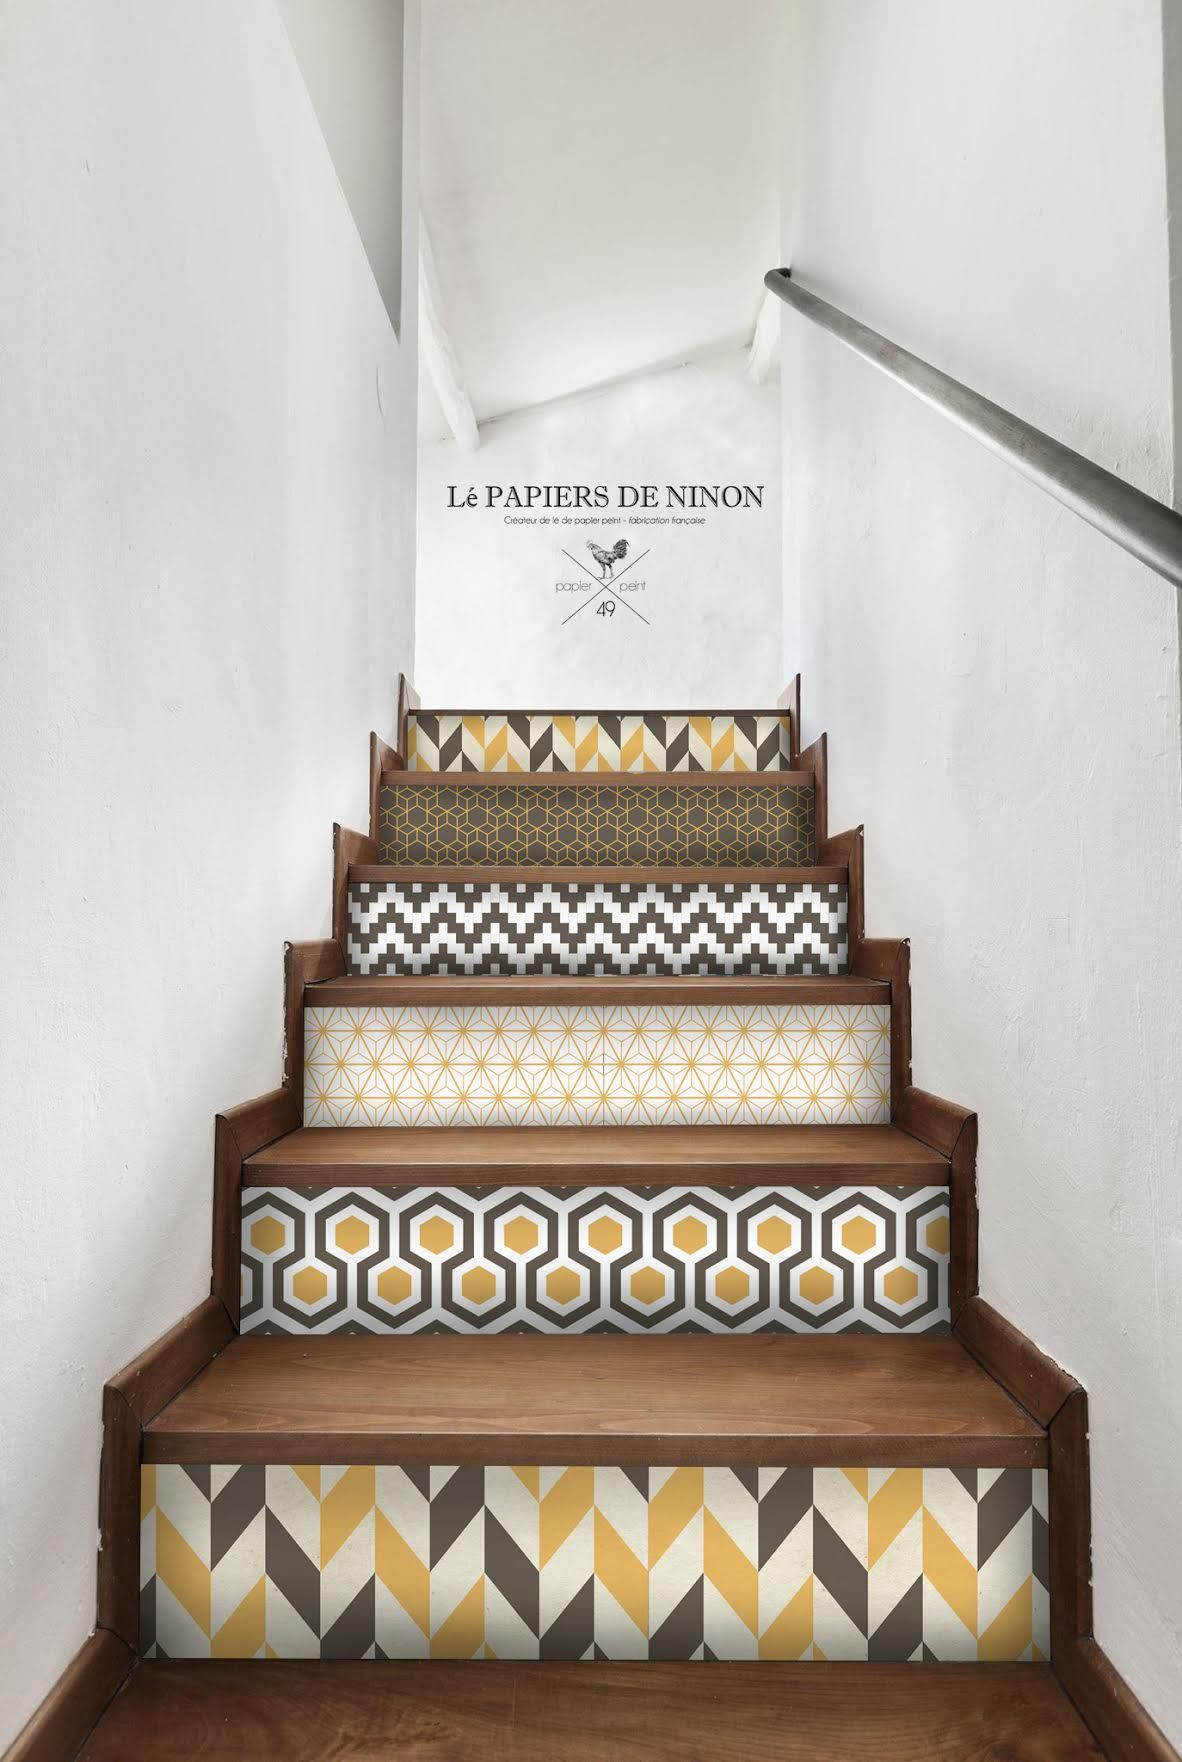 Rencontre l papiers de ninon salons decoration and for Idee deco pour escalier